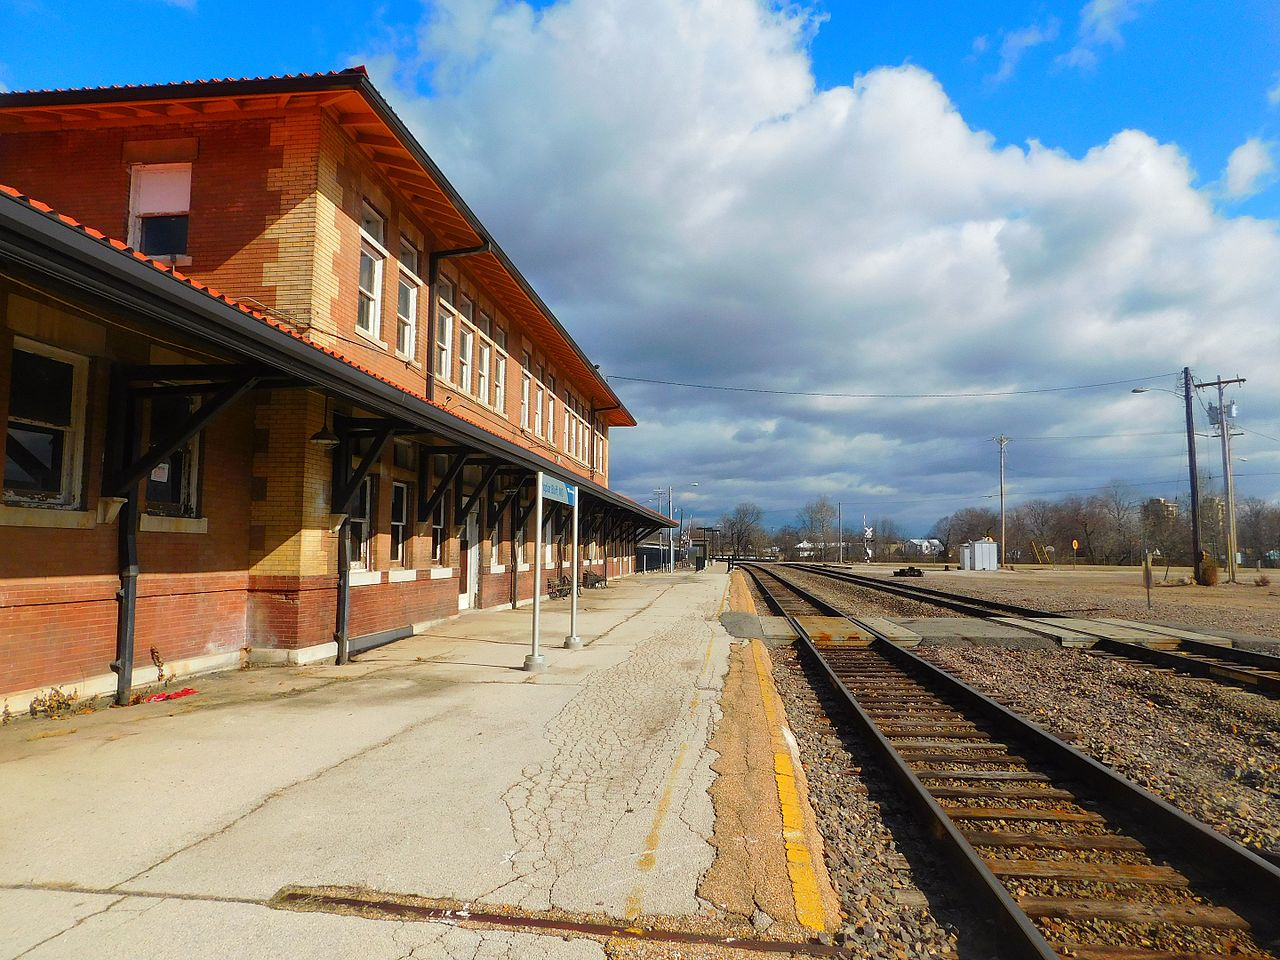 Poplar Bluff station was built in 1910 and operates as an Amtrak station today.